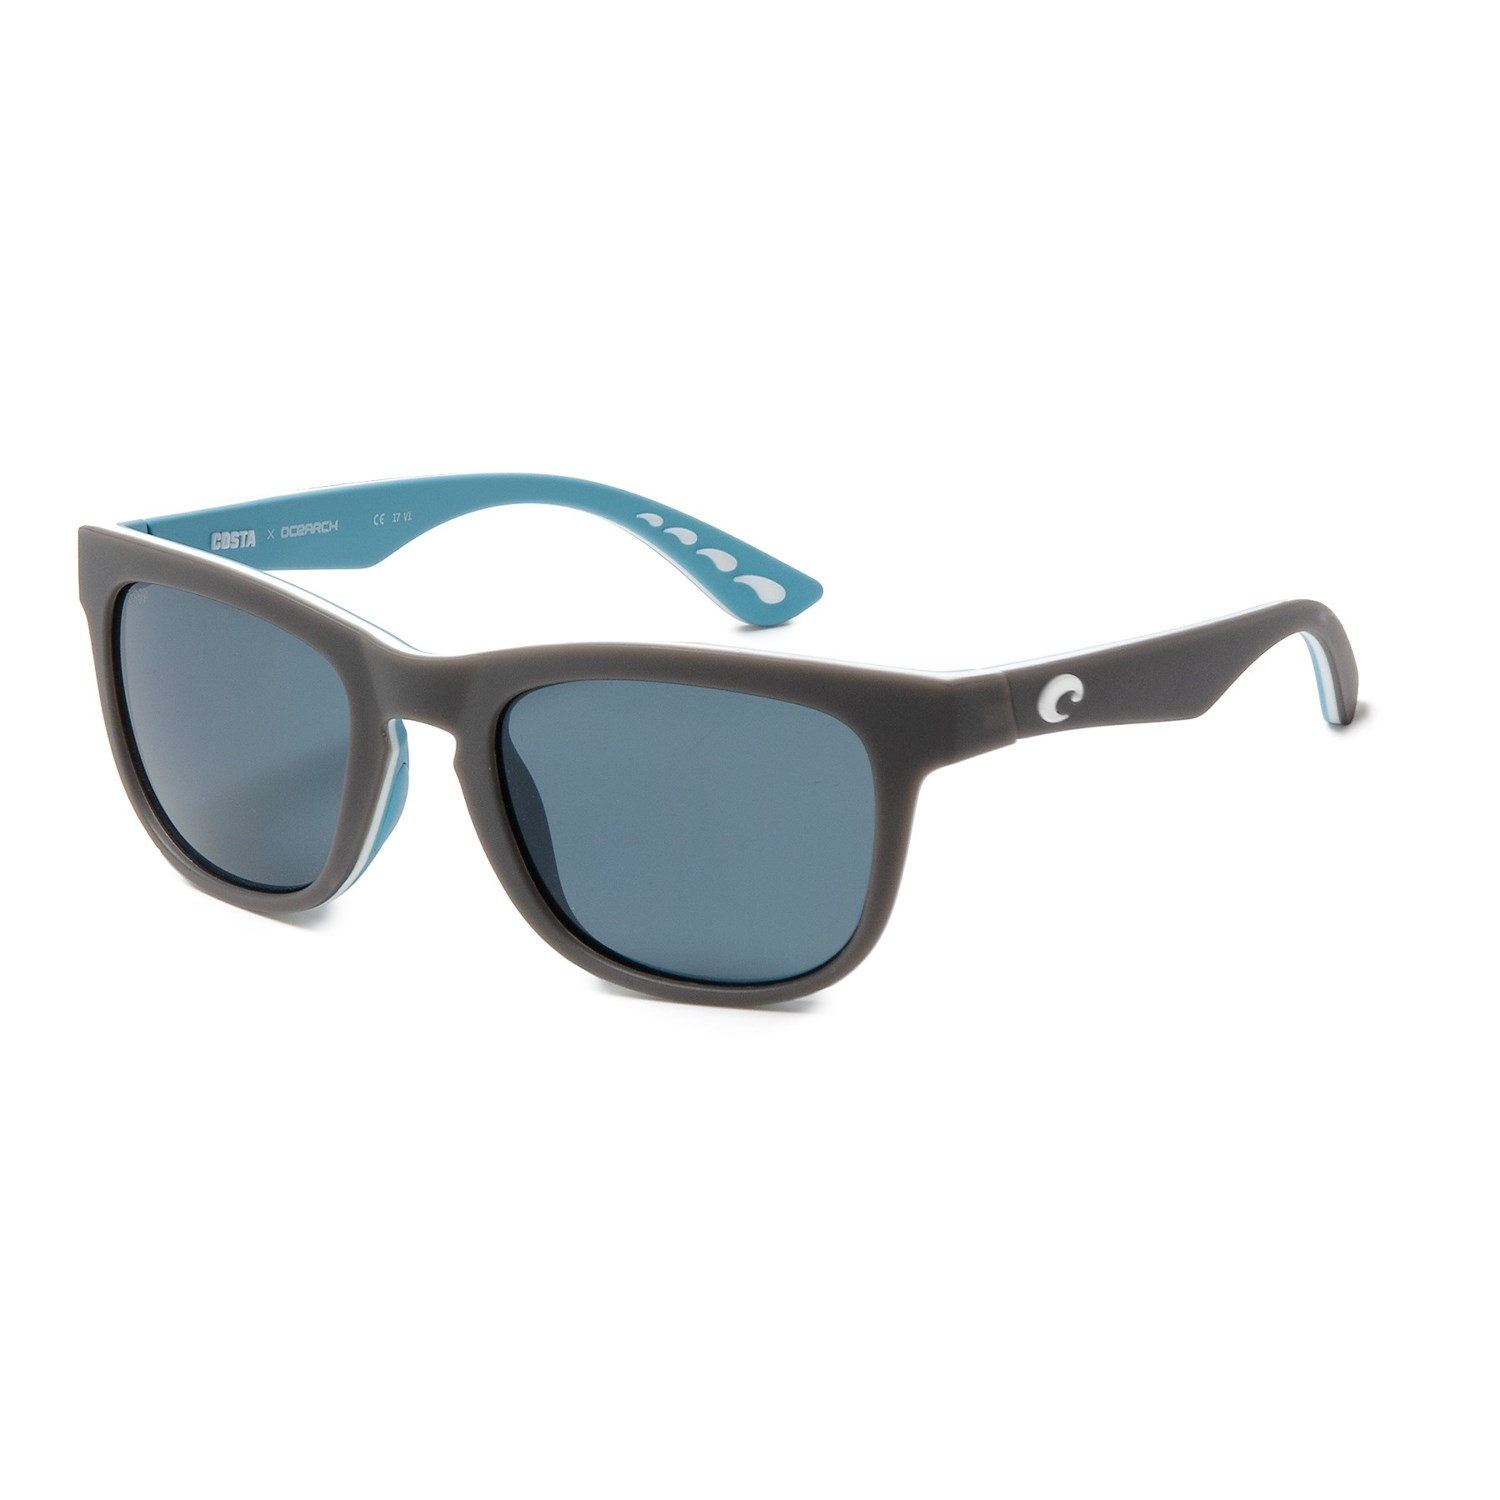 160be3d42a0 Costa Copra Sunglasses - Polarized 580P Lenses in Mountain Gray White Eagle  Gray. Tap to expand